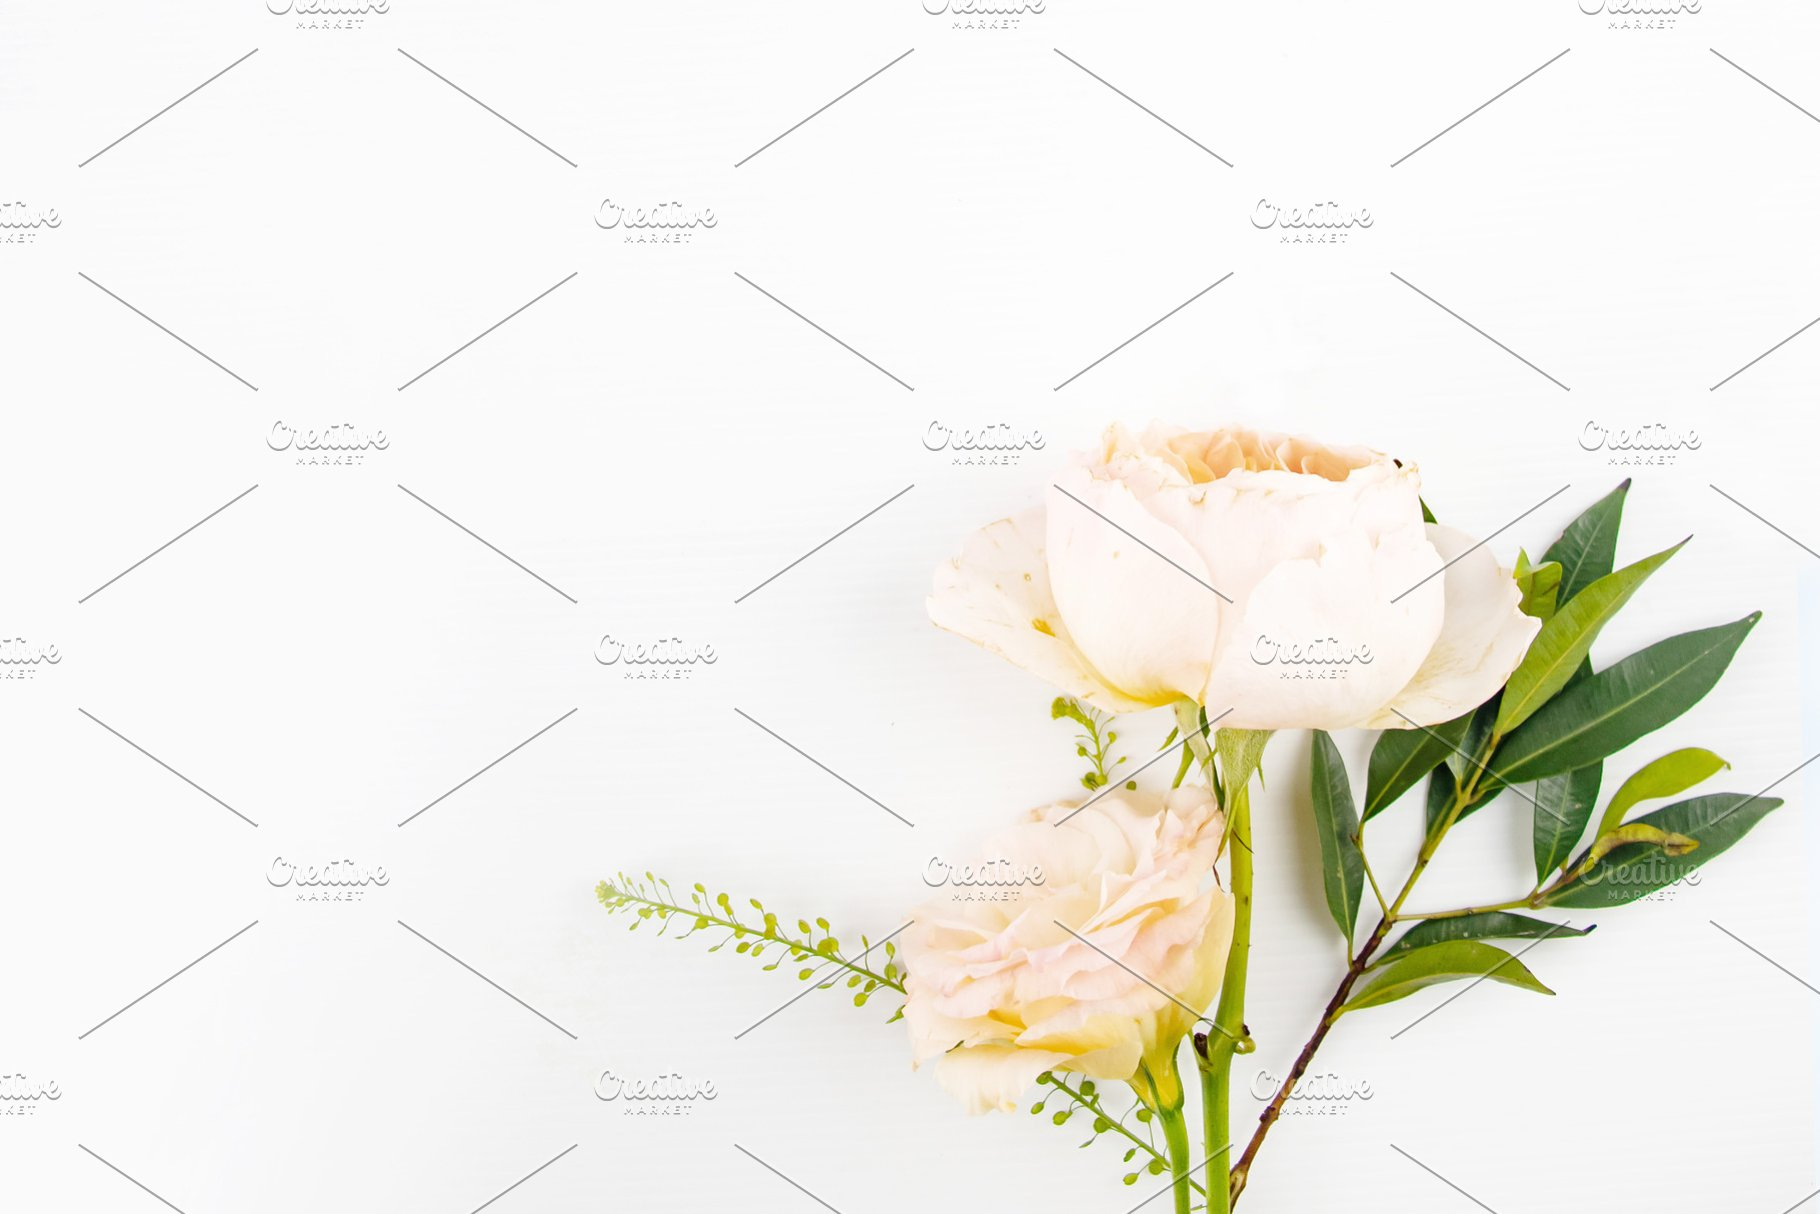 Rustic Floral White Background High Quality Arts Entertainment